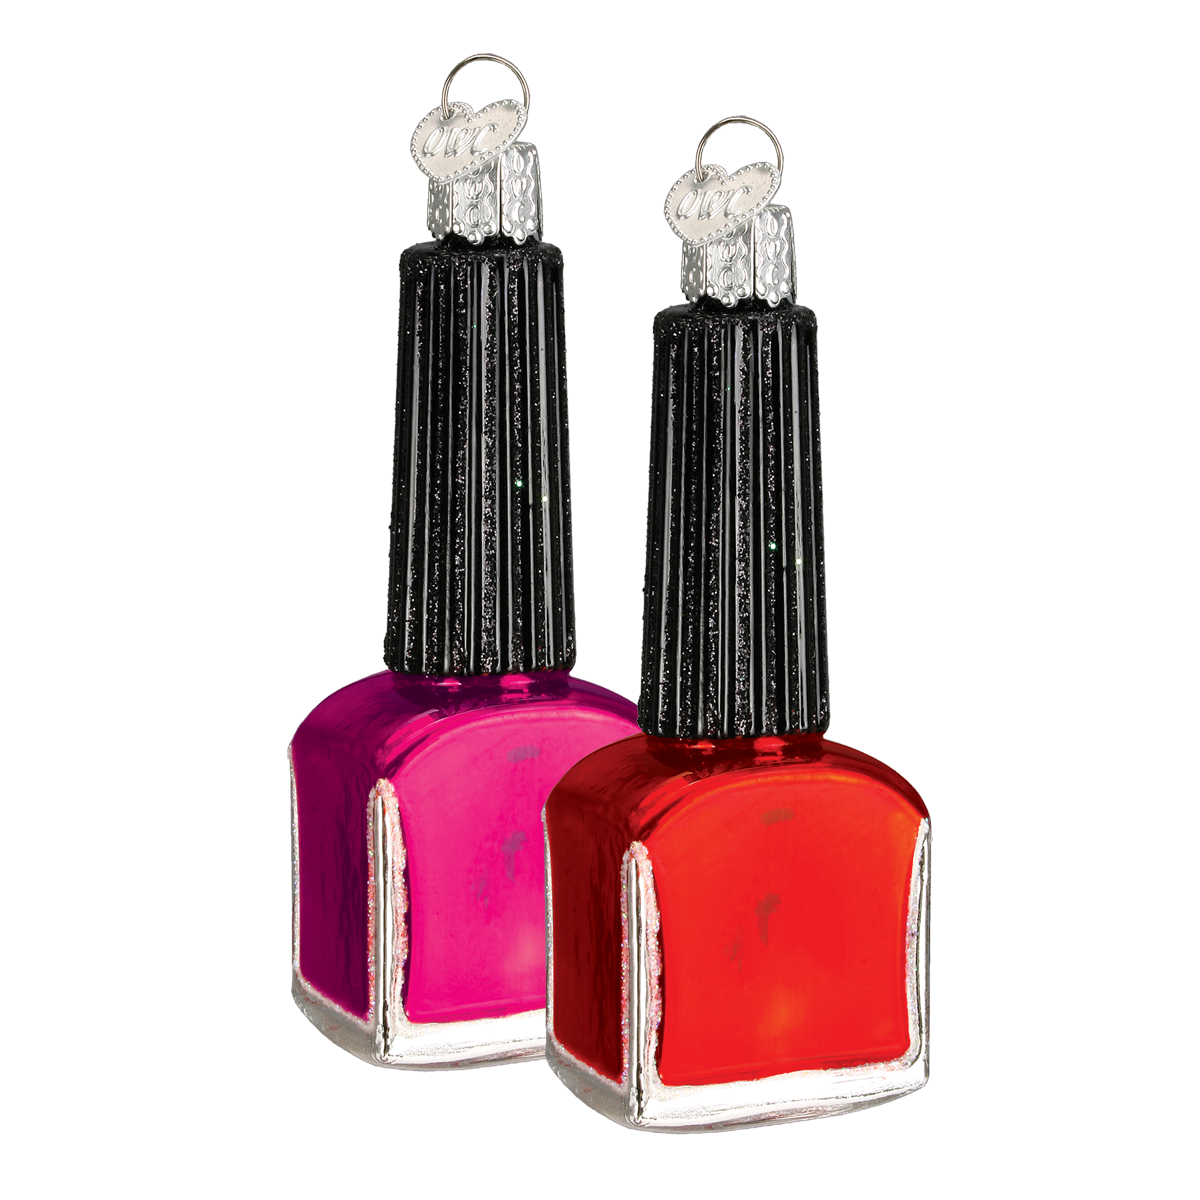 It's summer and that means perfectly polished toes! Add a little glamour to your Christmas tree with this beautiful glass Nail Polish Bottle ornament. It was carefully mouth-blown into a finely crafted mold, then a hot solution of liquid silver was poured inside. Finally, it was hand-painted with bright lacquers and glitters for you to enjoy! #summertime #manicure #pedicure #nails #nailpolish #fashionista #glassornaments #giftideas #oldworldchristmass Nail Polish (assorted colors) (Item…